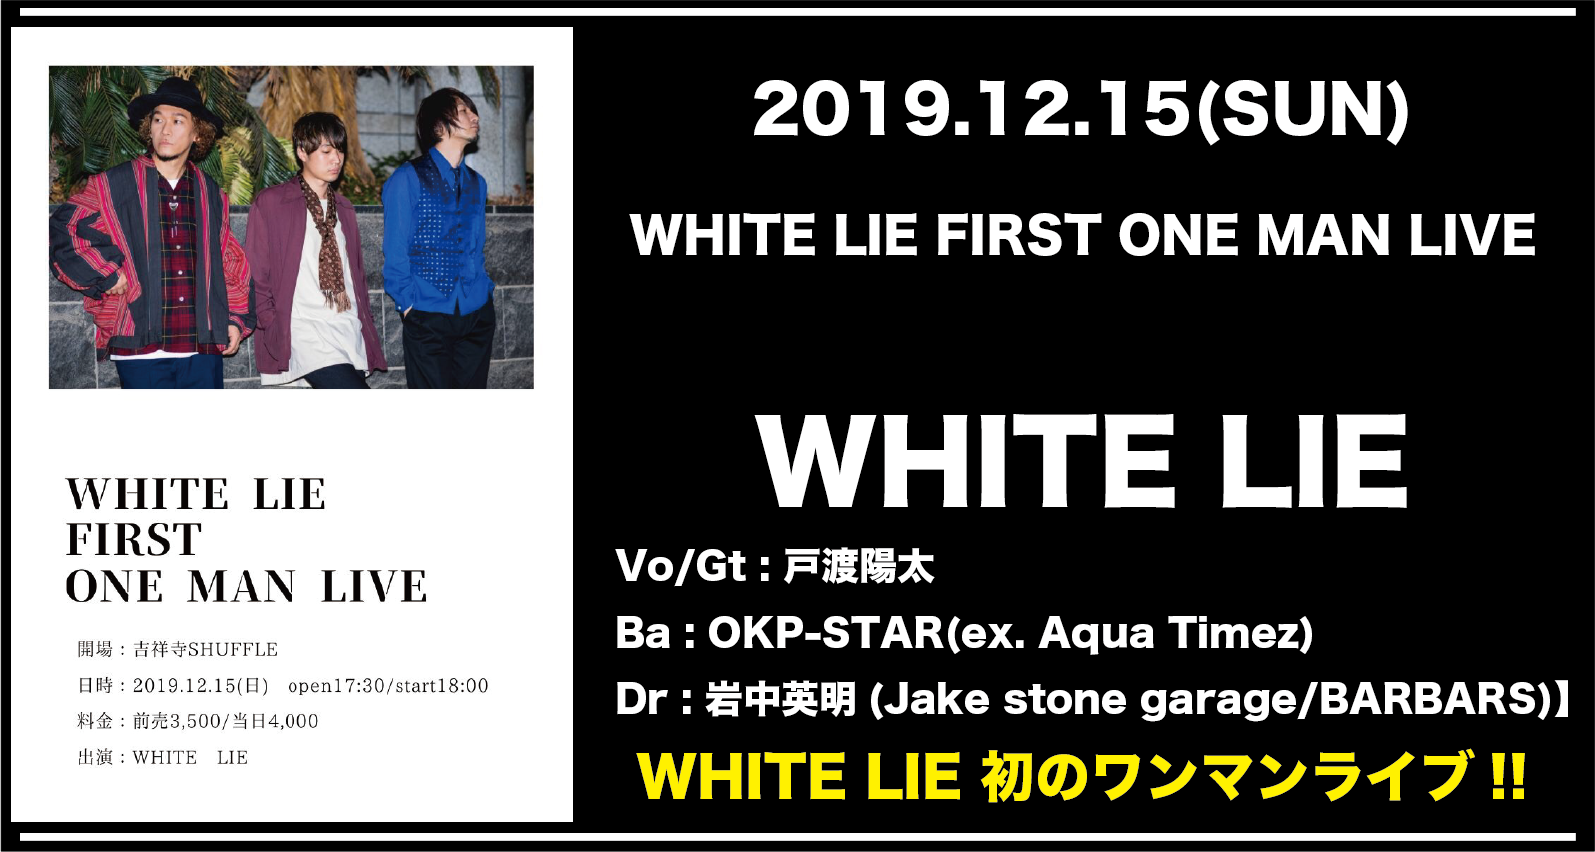 WHITE LIE FIRST ONE MAN LIVE